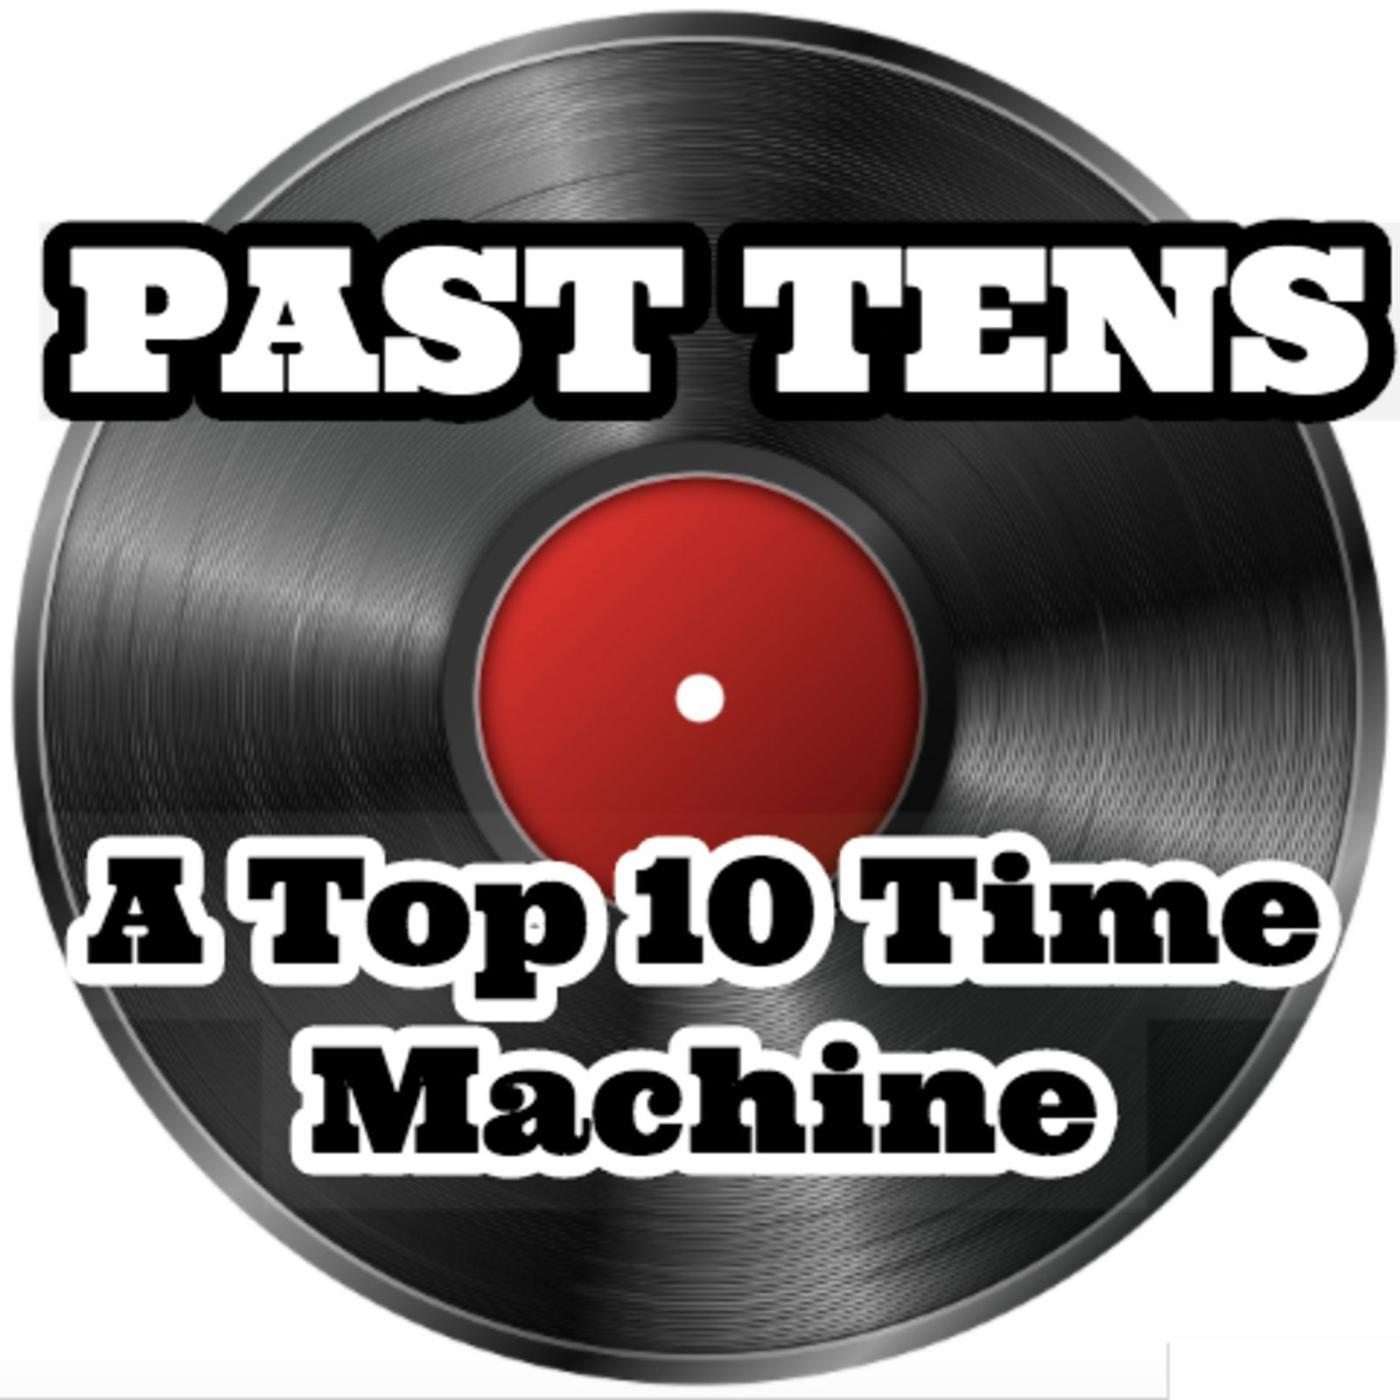 PAST TENS: A Top 10 Time Machine